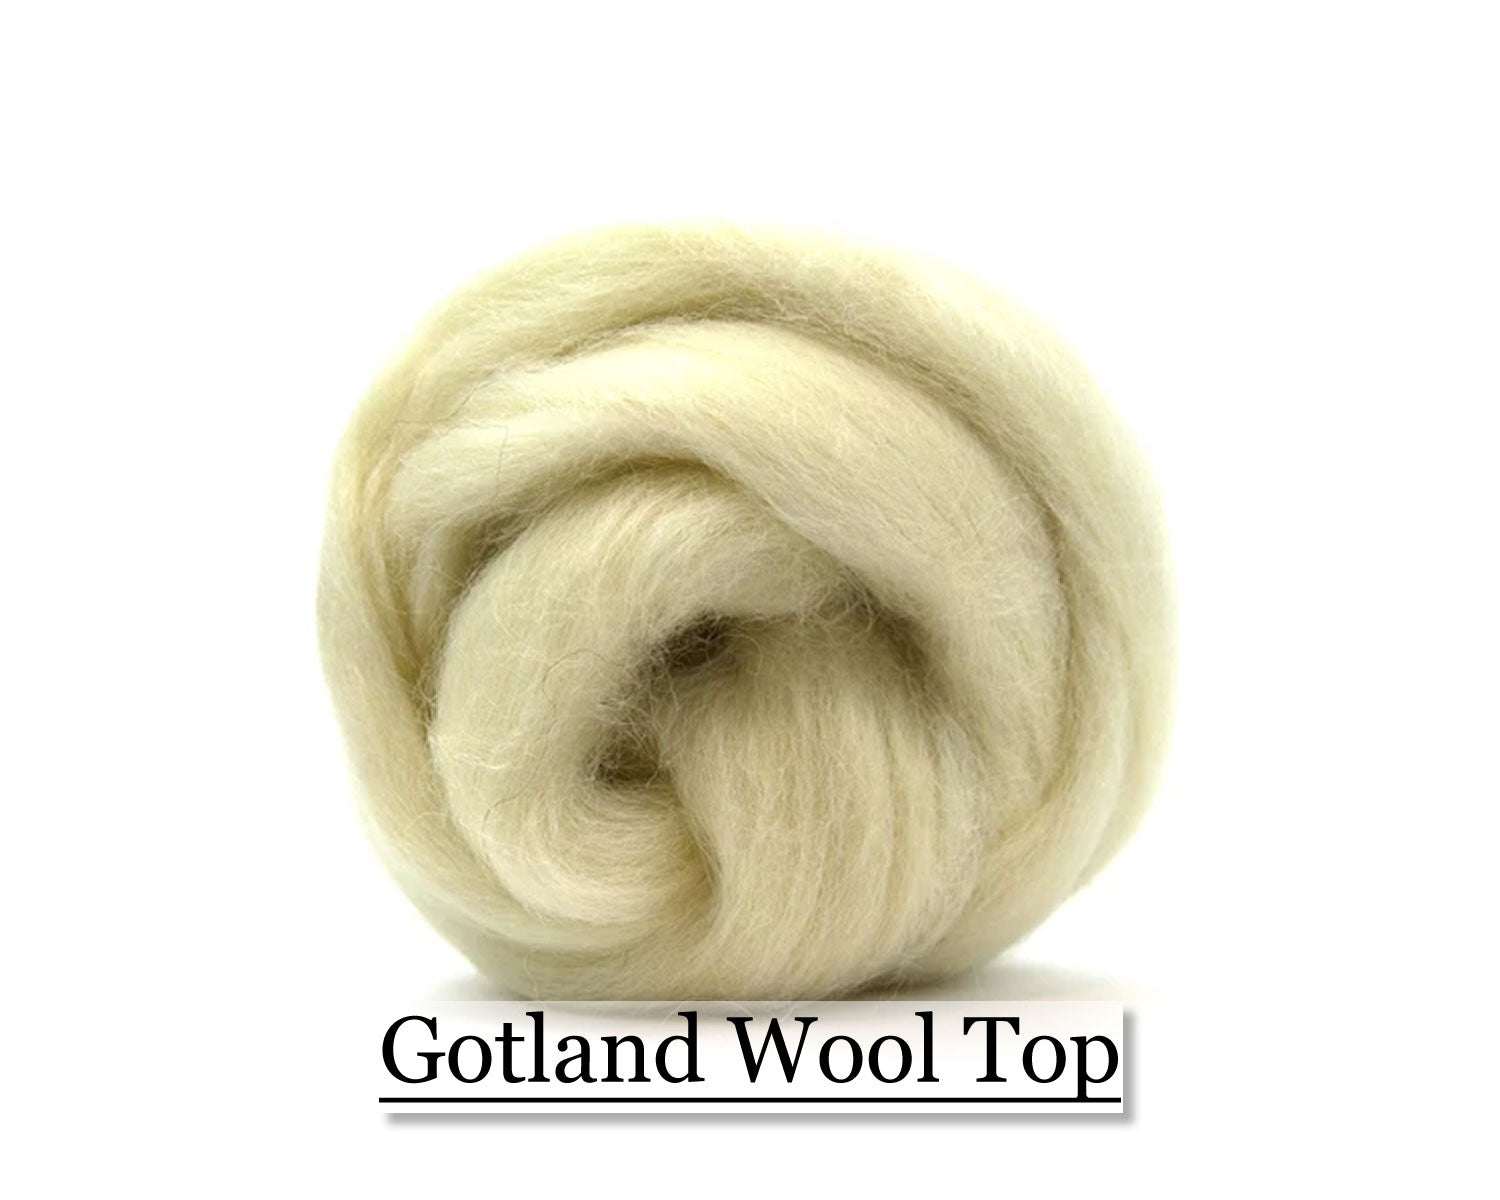 White Gotland Wool Top - 16 oz